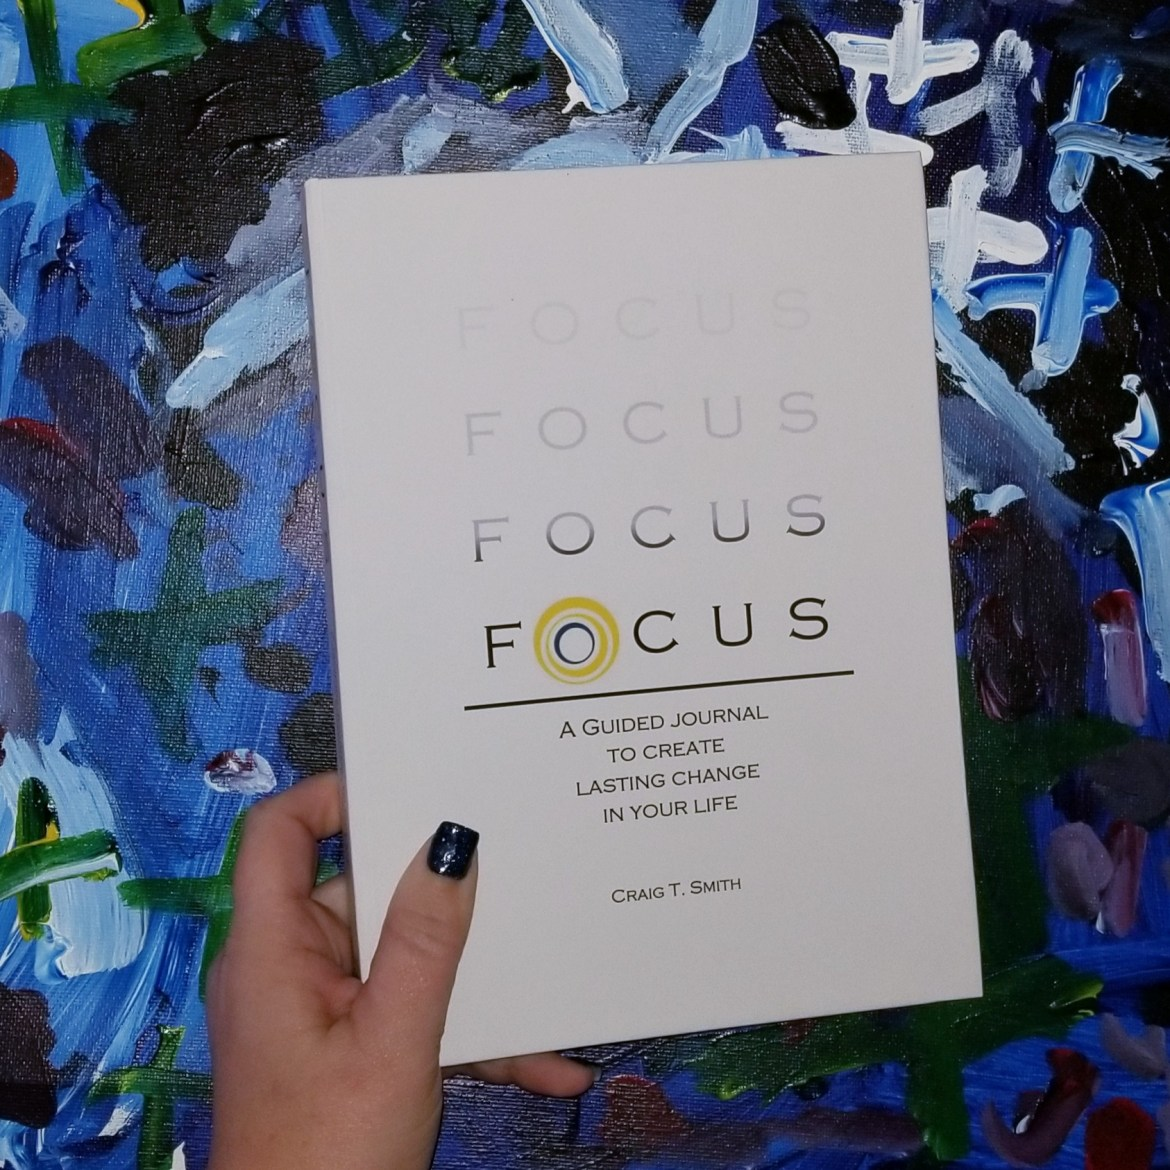 Focus: A Guided Journal to Create Lasting Change in Your Life